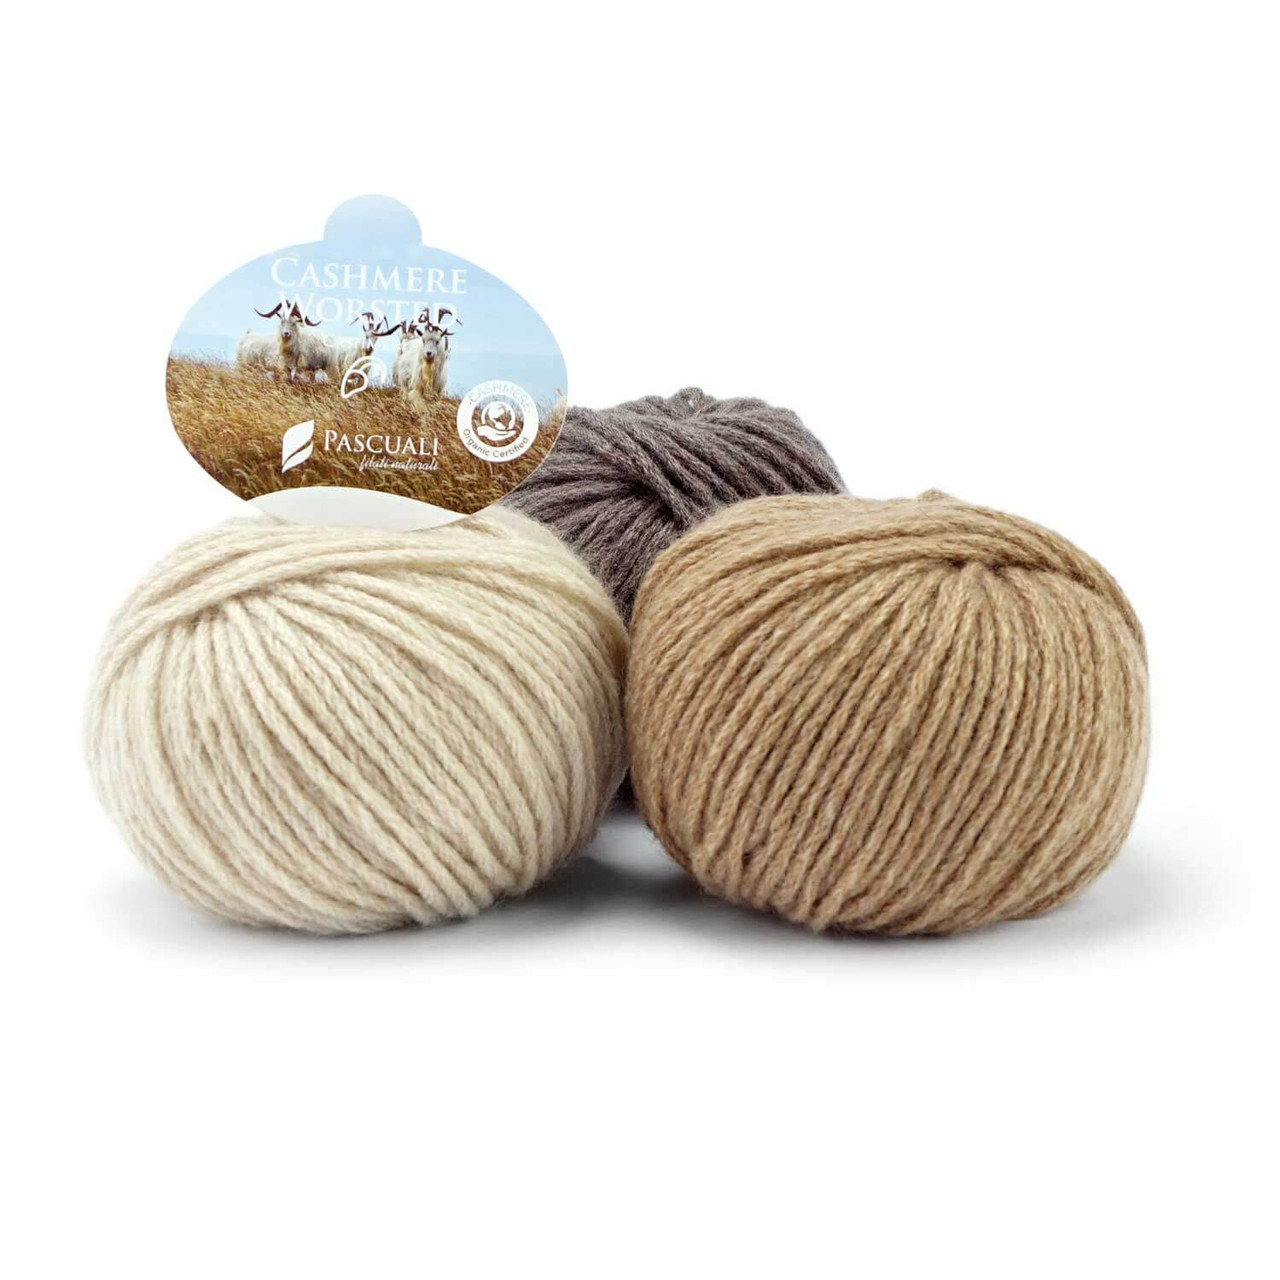 Organic Cashmere Worsted by Pascuali